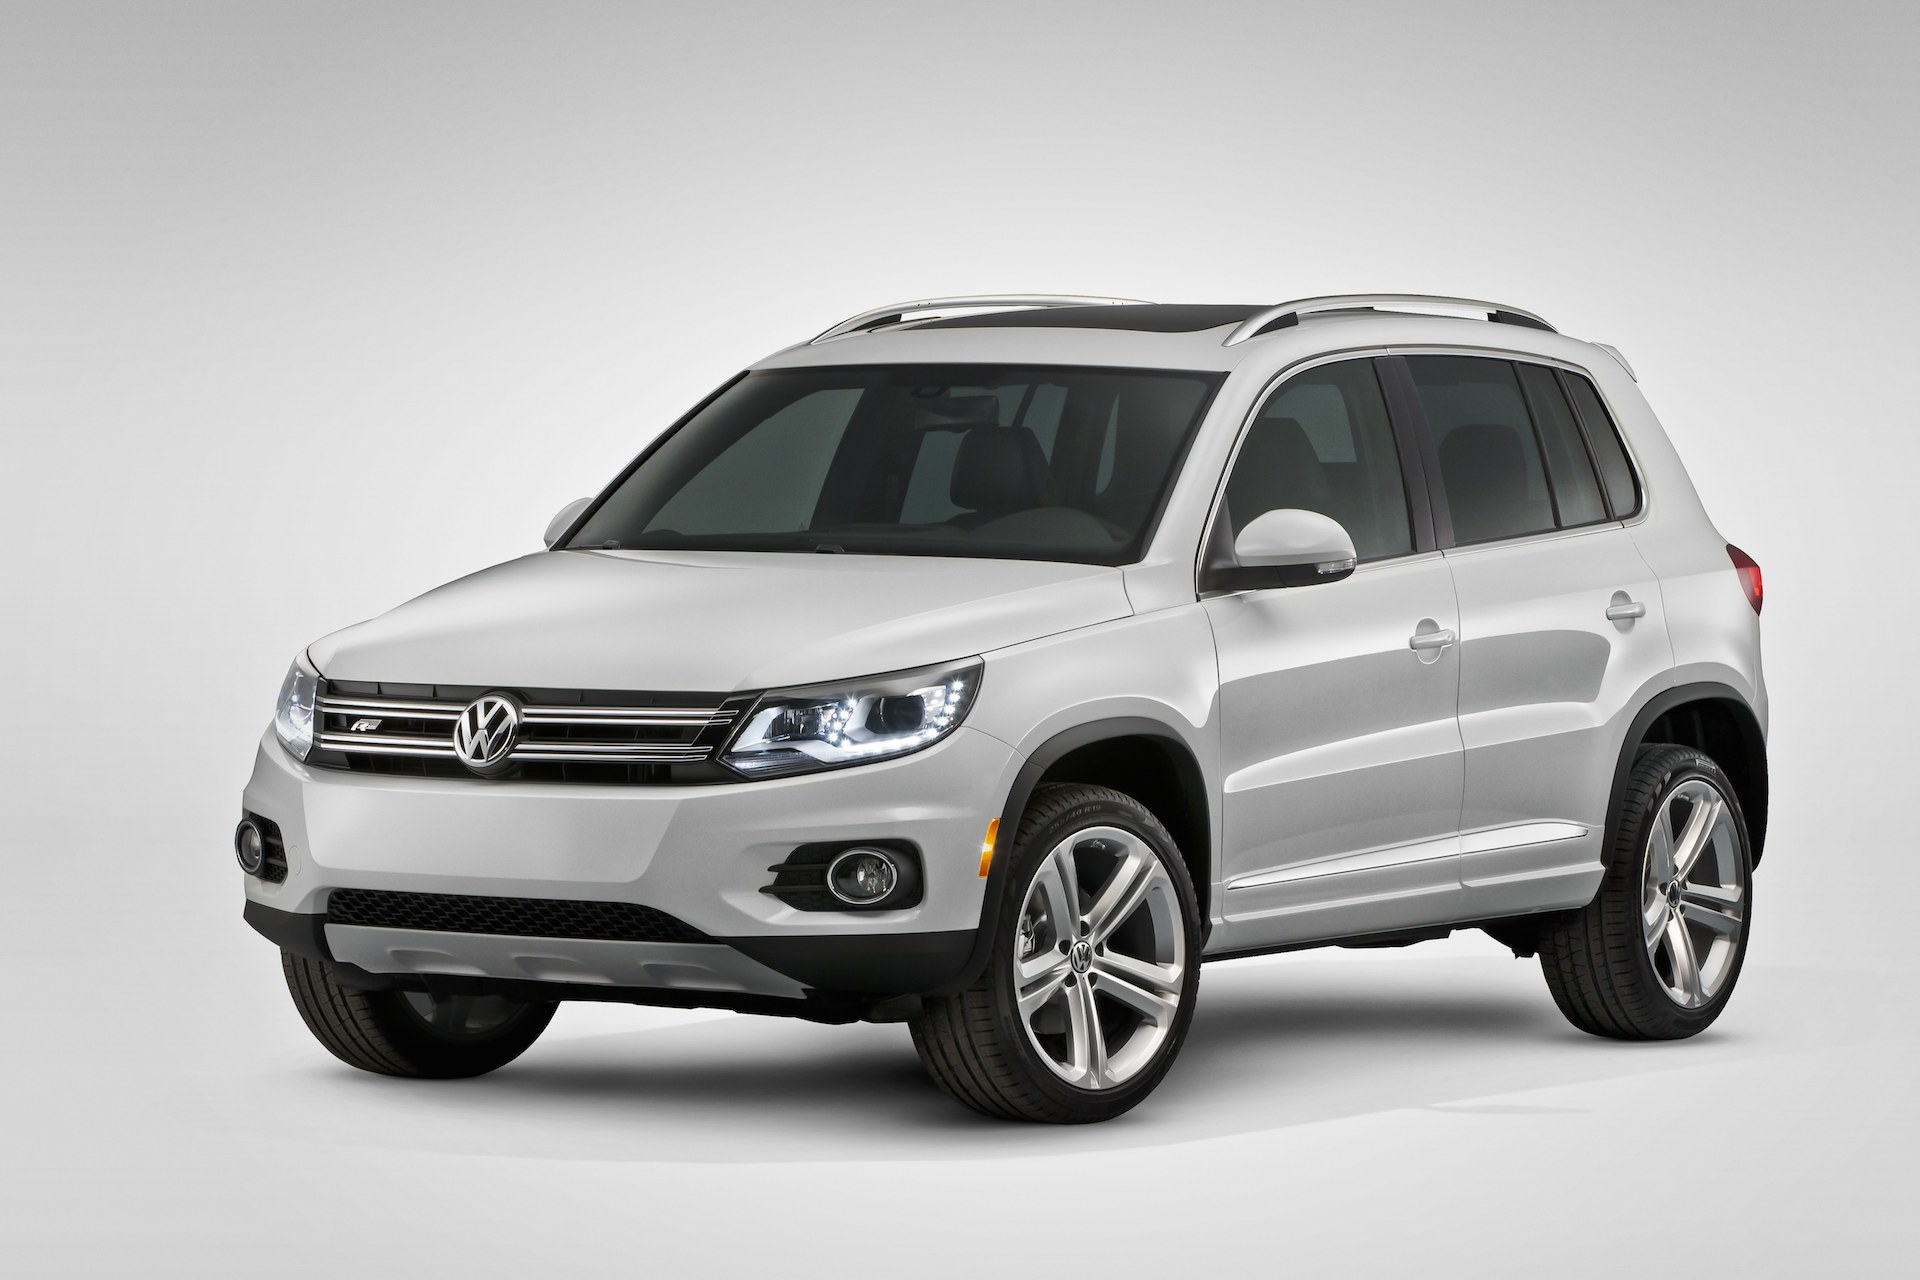 2016 volkswagen tiguan vw review ratings specs prices. Black Bedroom Furniture Sets. Home Design Ideas